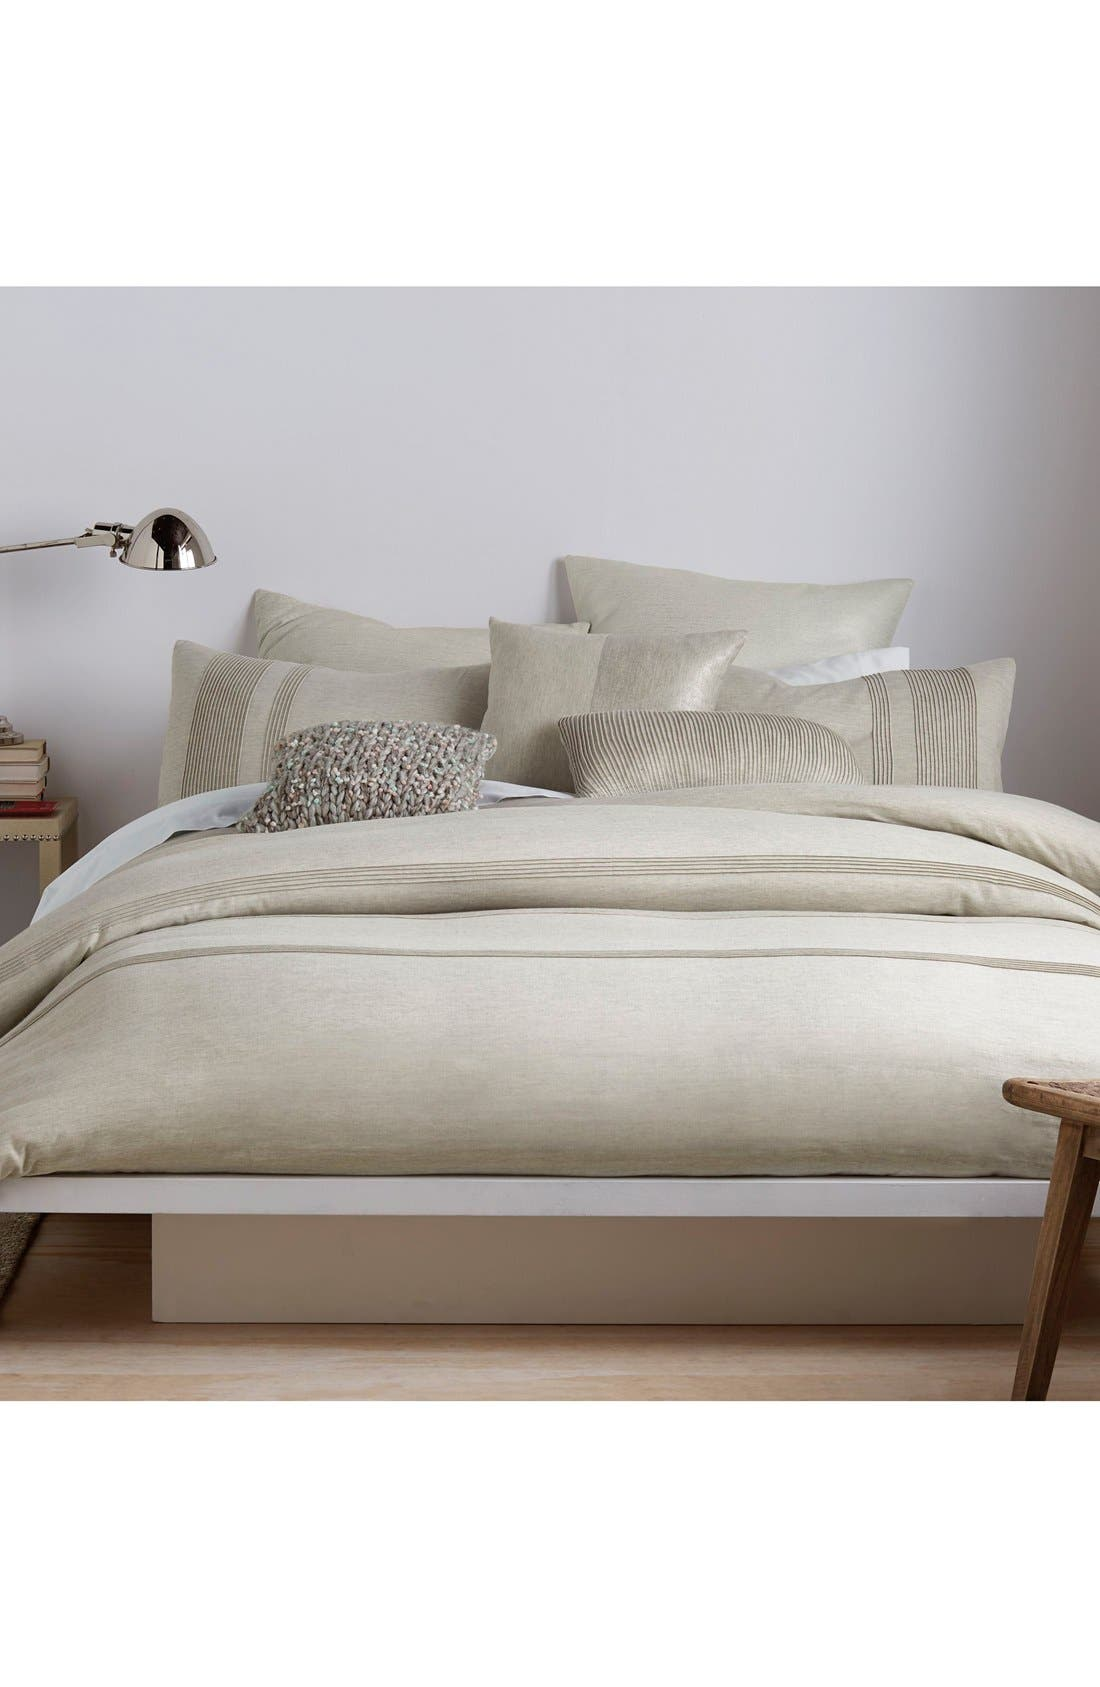 DKNY 'Mode' Bedding Collection